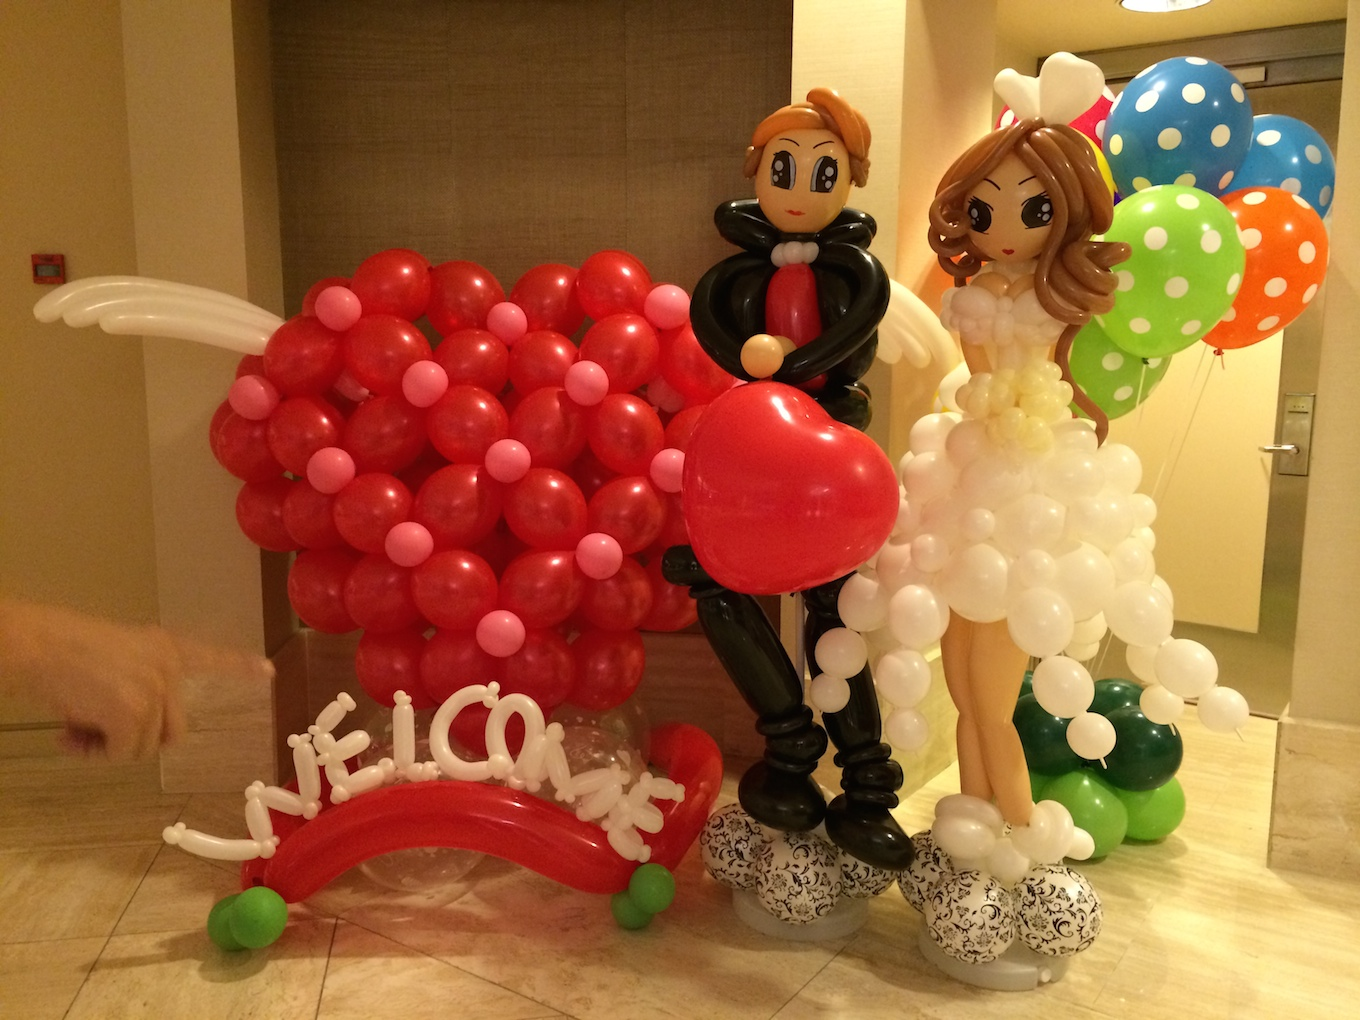 Weddings instant photobooths balloon decorations wedding for Balloon decoration for weddings